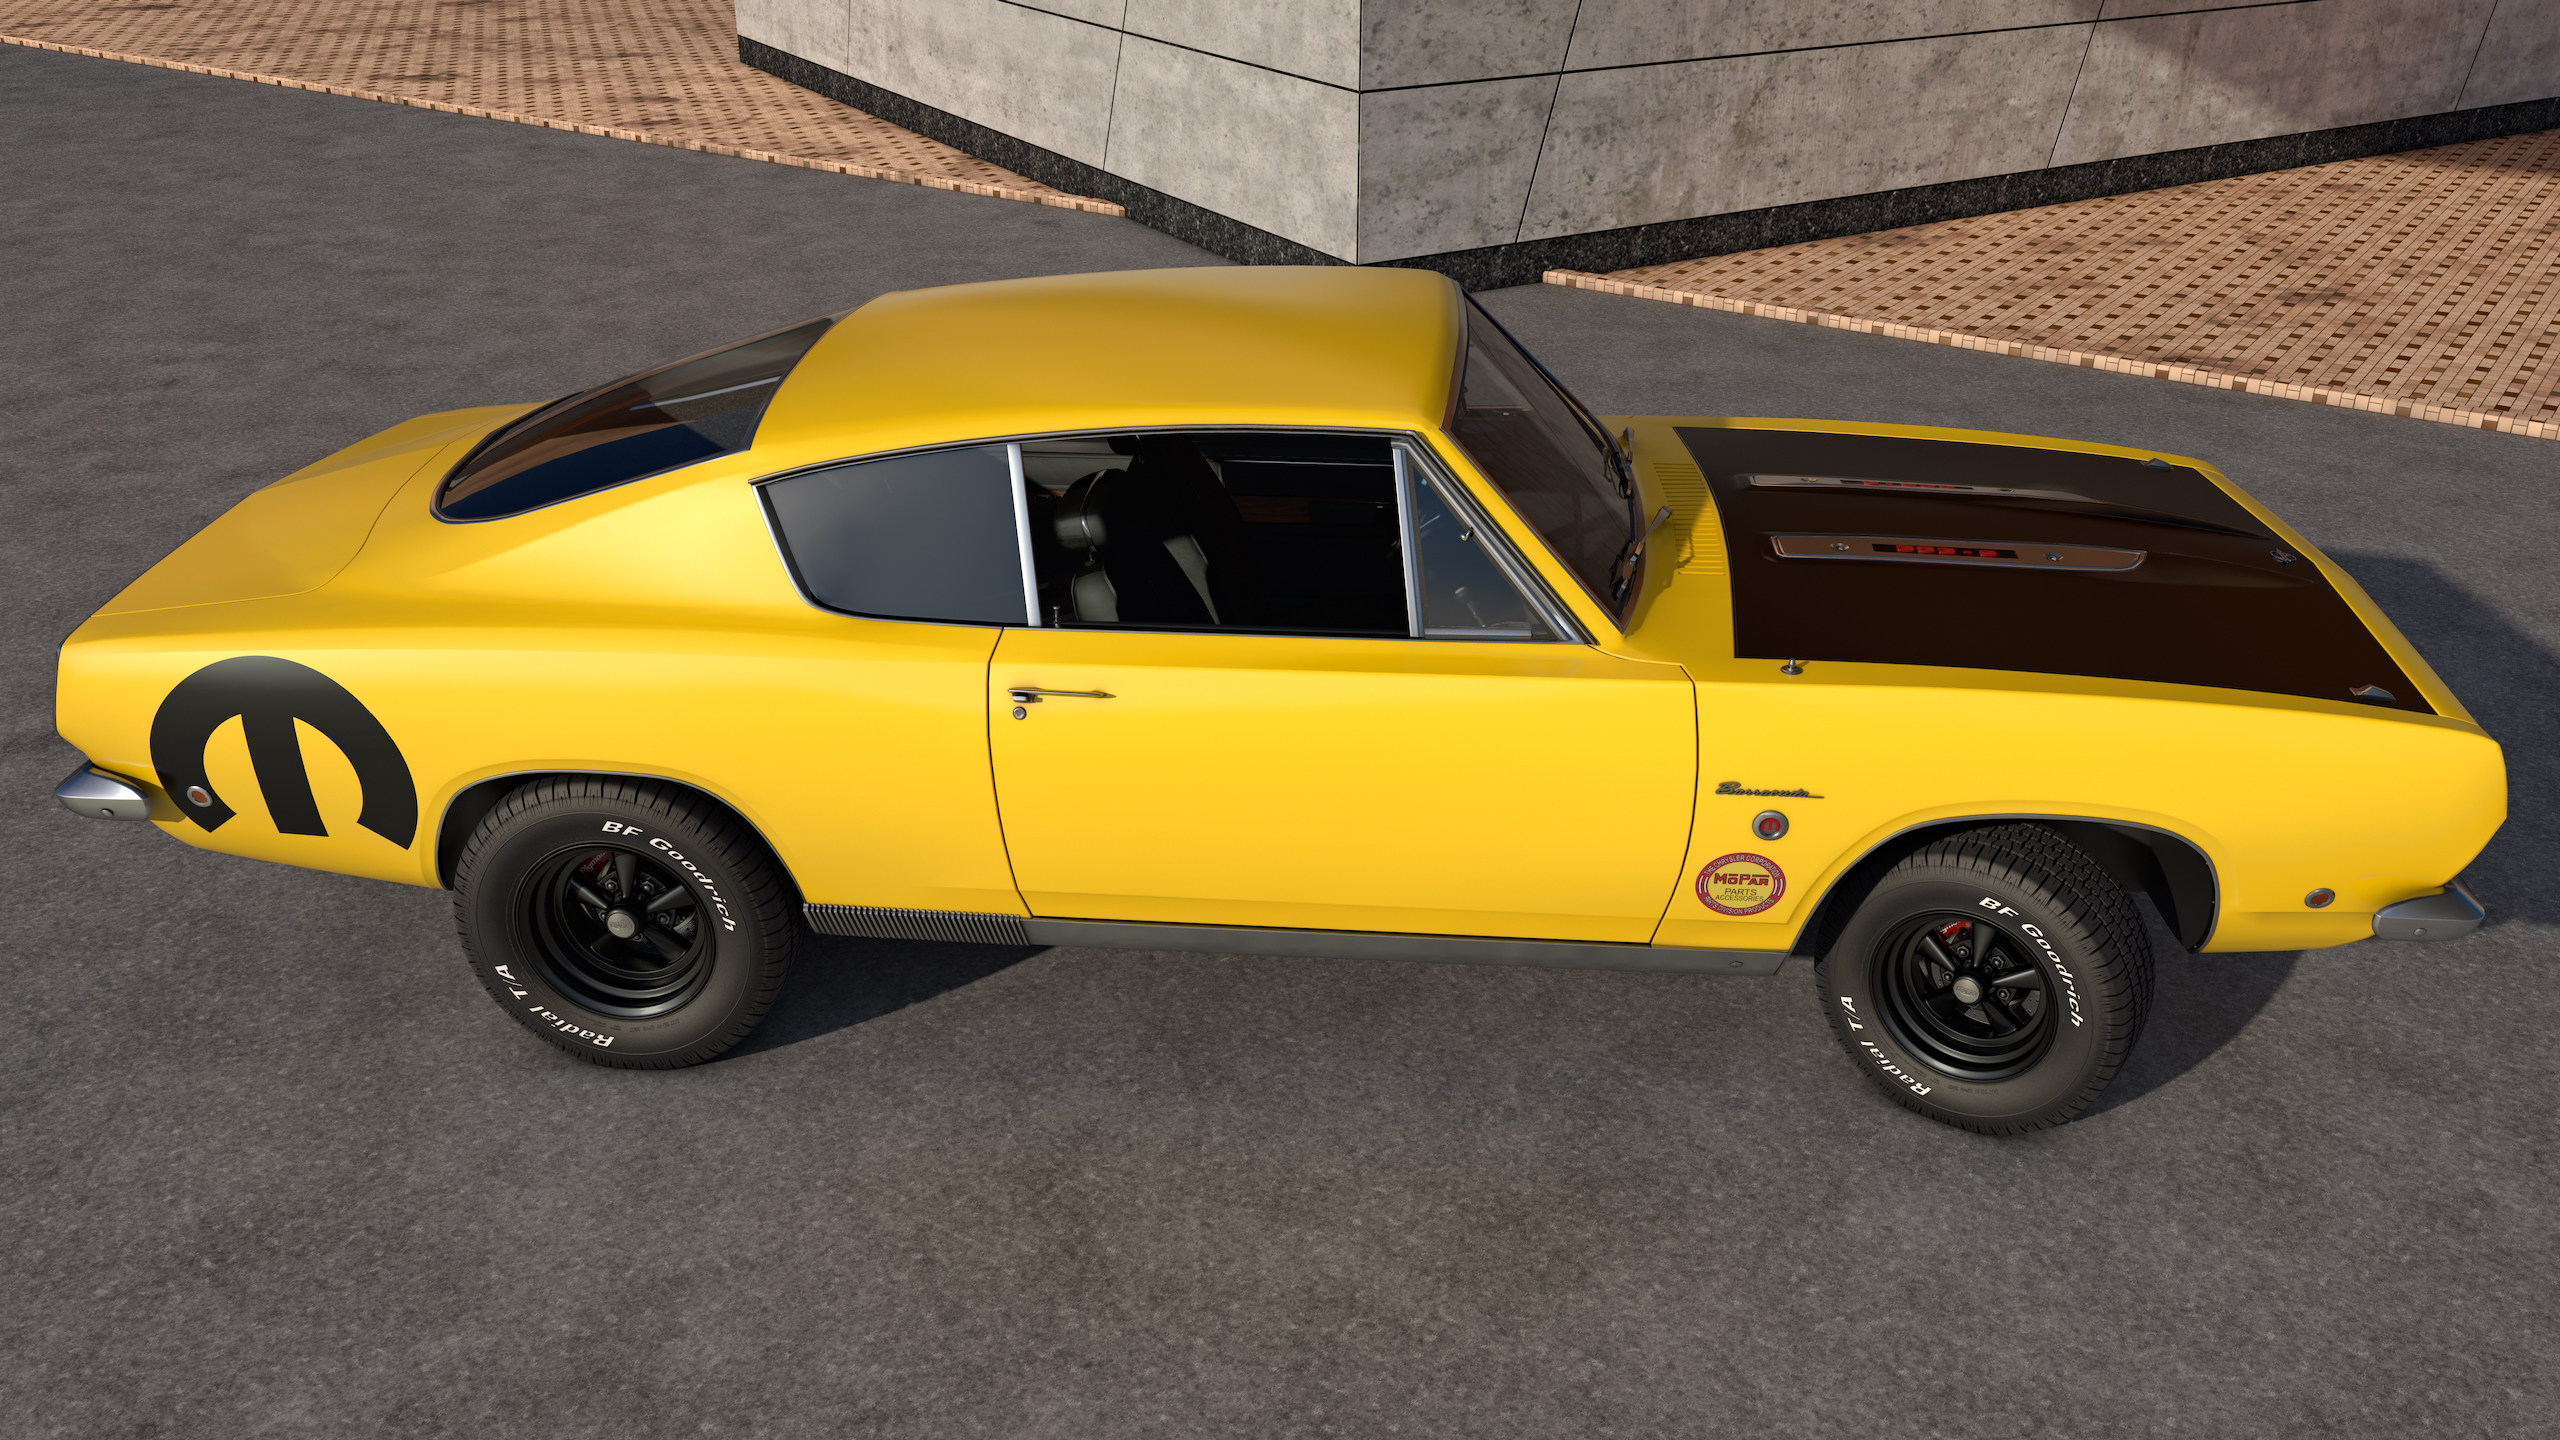 1968 Plymouth Barracuda by SamCurry